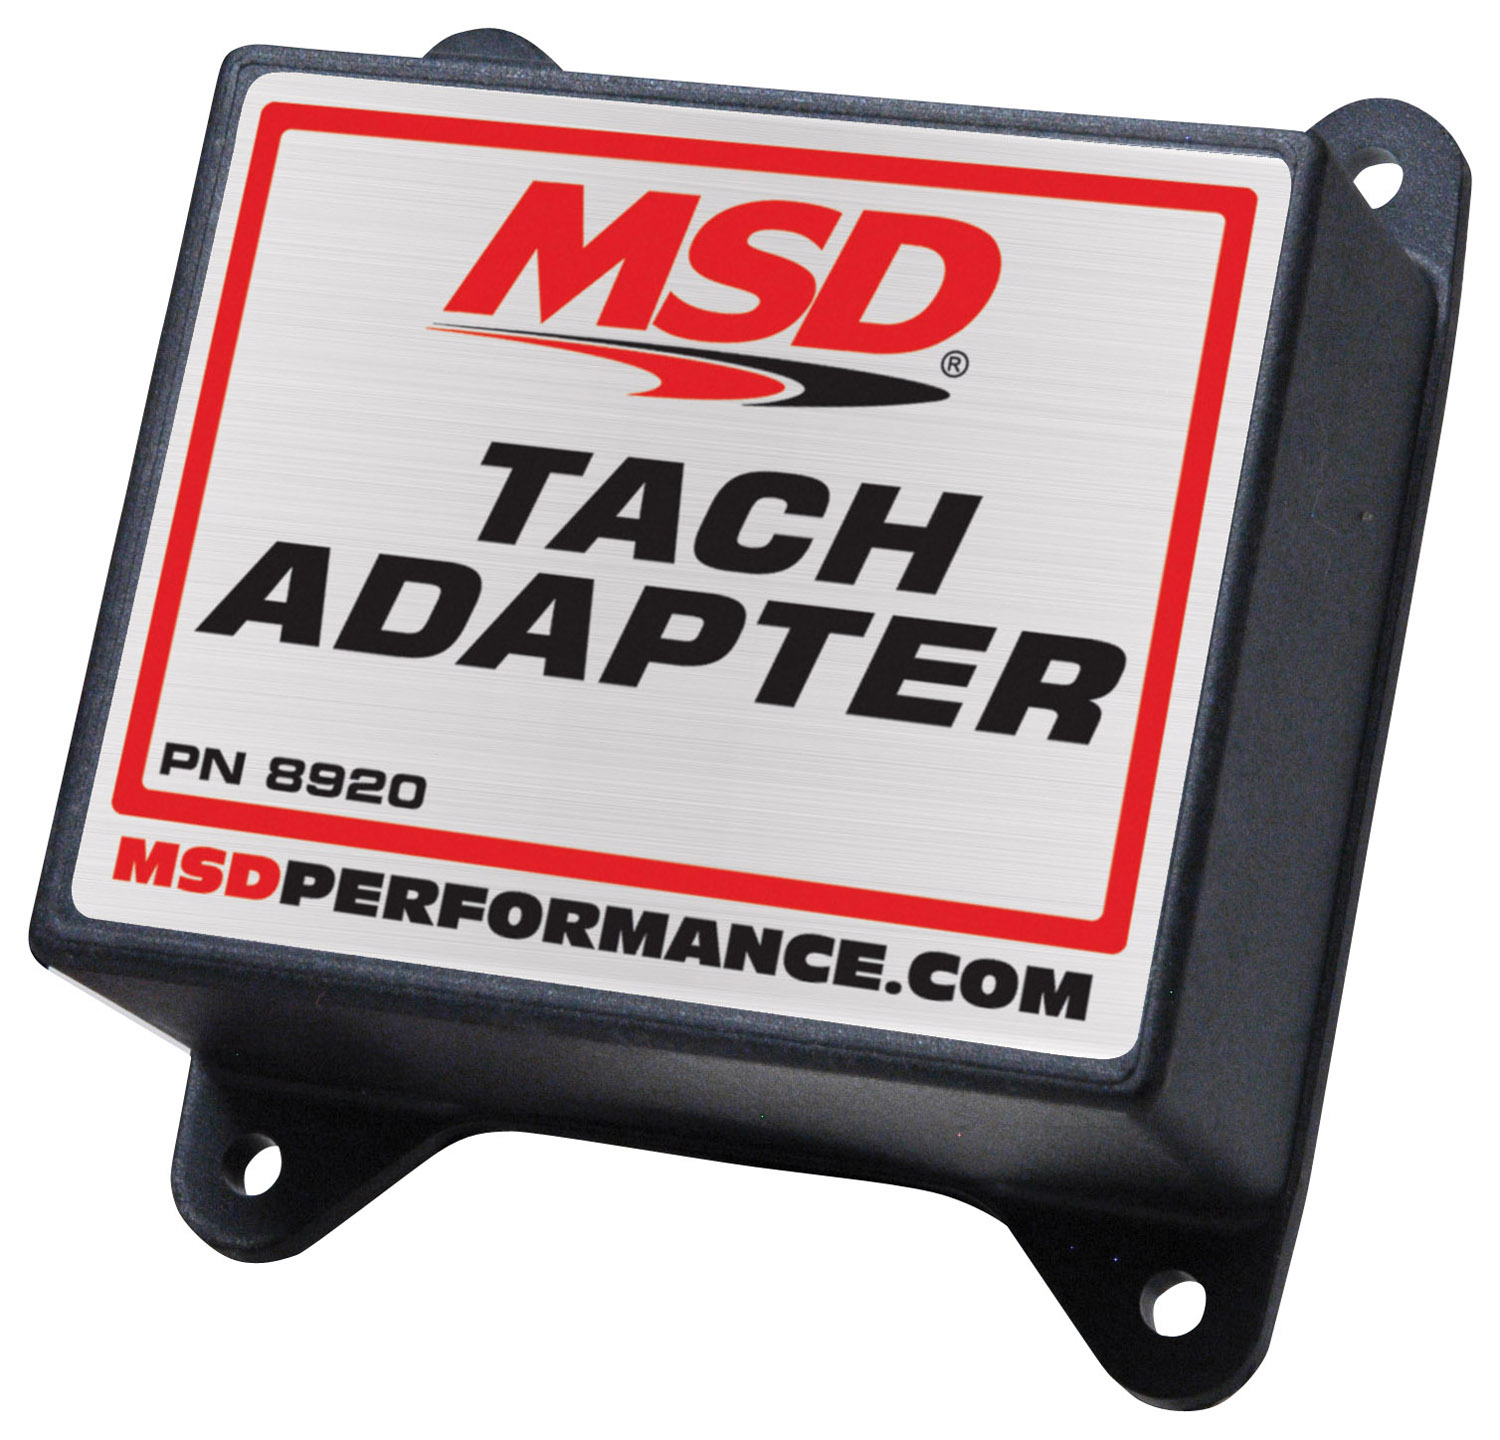 Msd 8920 Tachometer  Fuel Injection Pickups At Atkhp Com